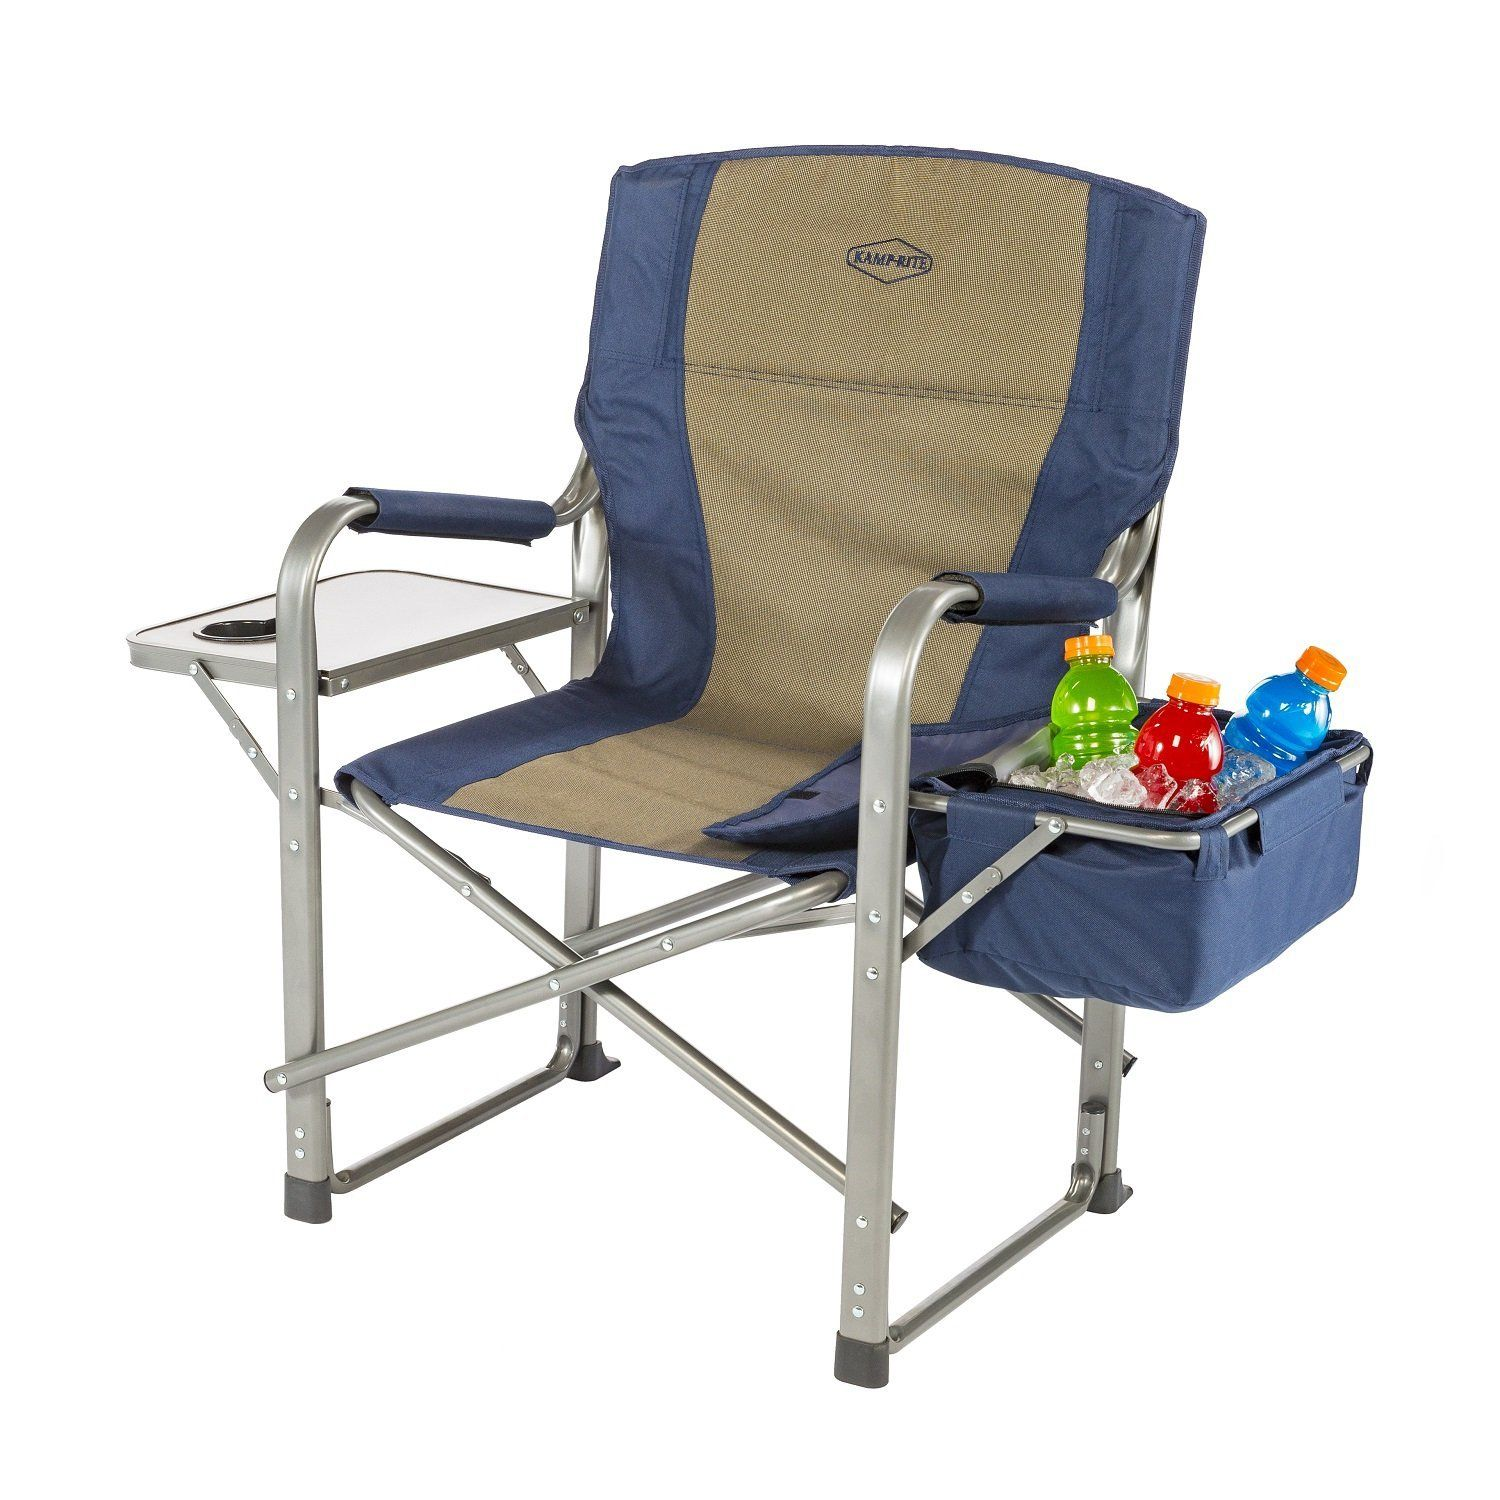 Outdoor chair camping - Kamp Rite Director S Chair With Side Table And Cooler Blue